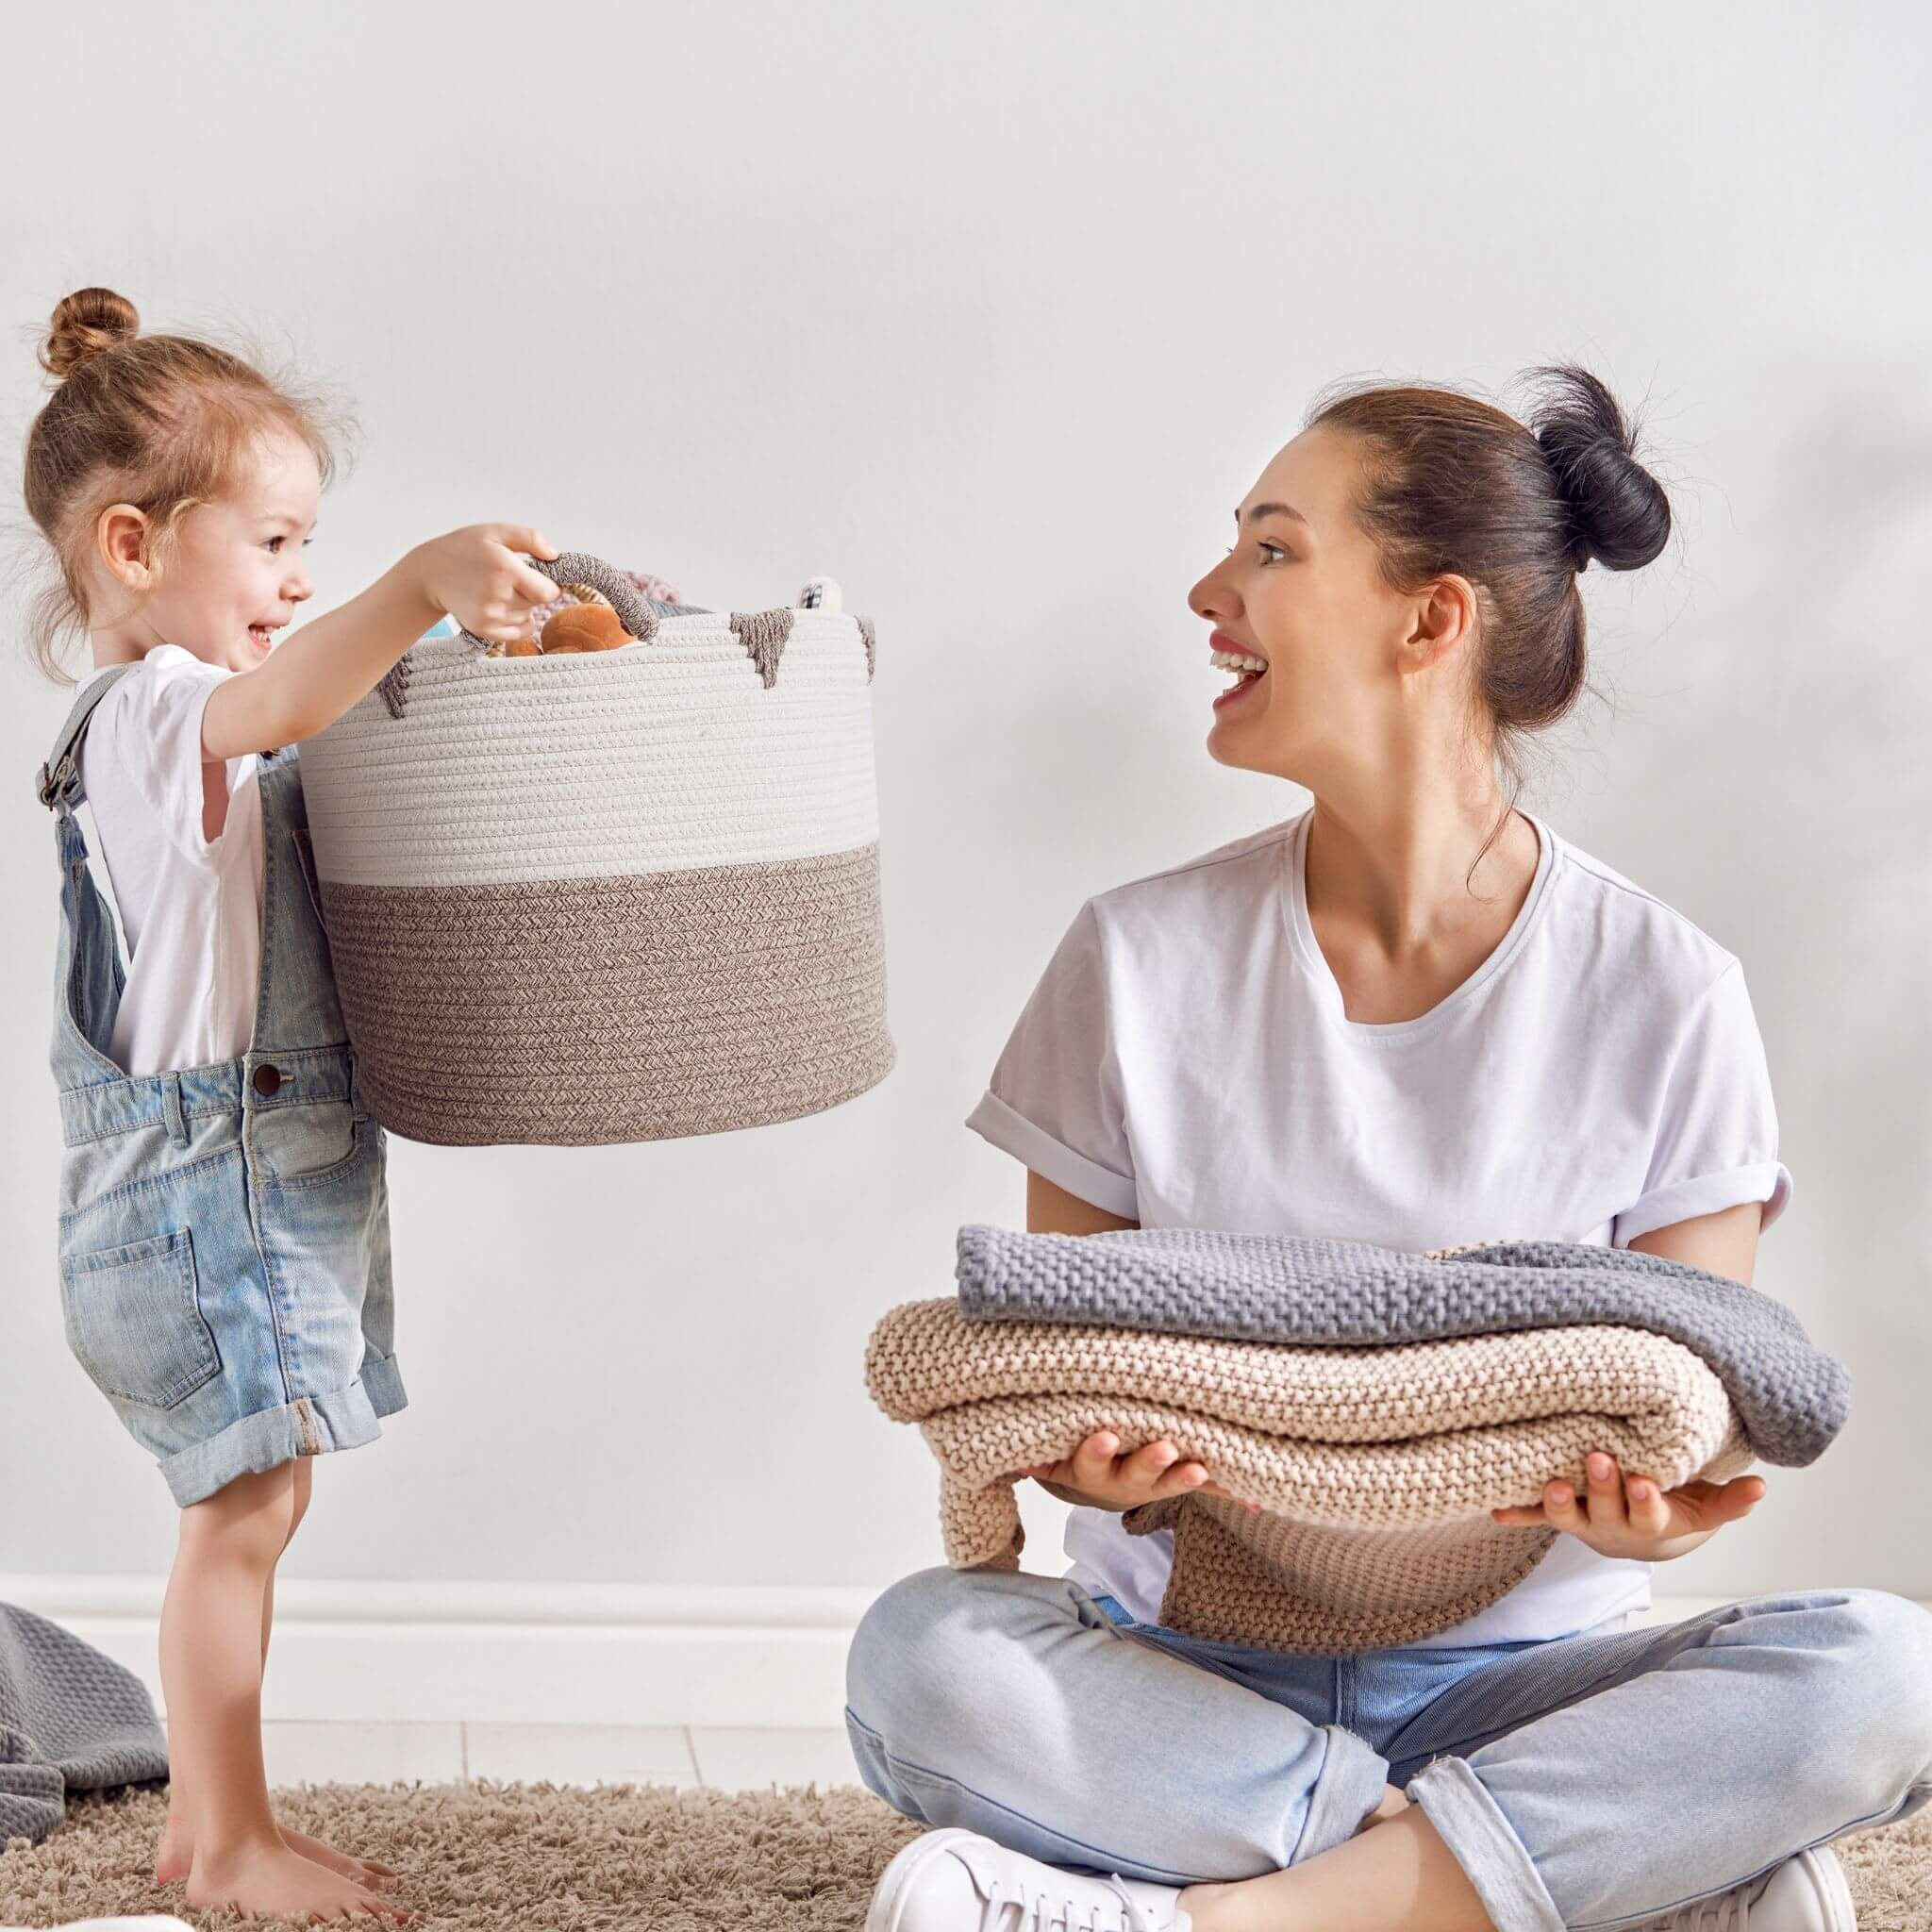 kid playing with a basket storage and mom smiling